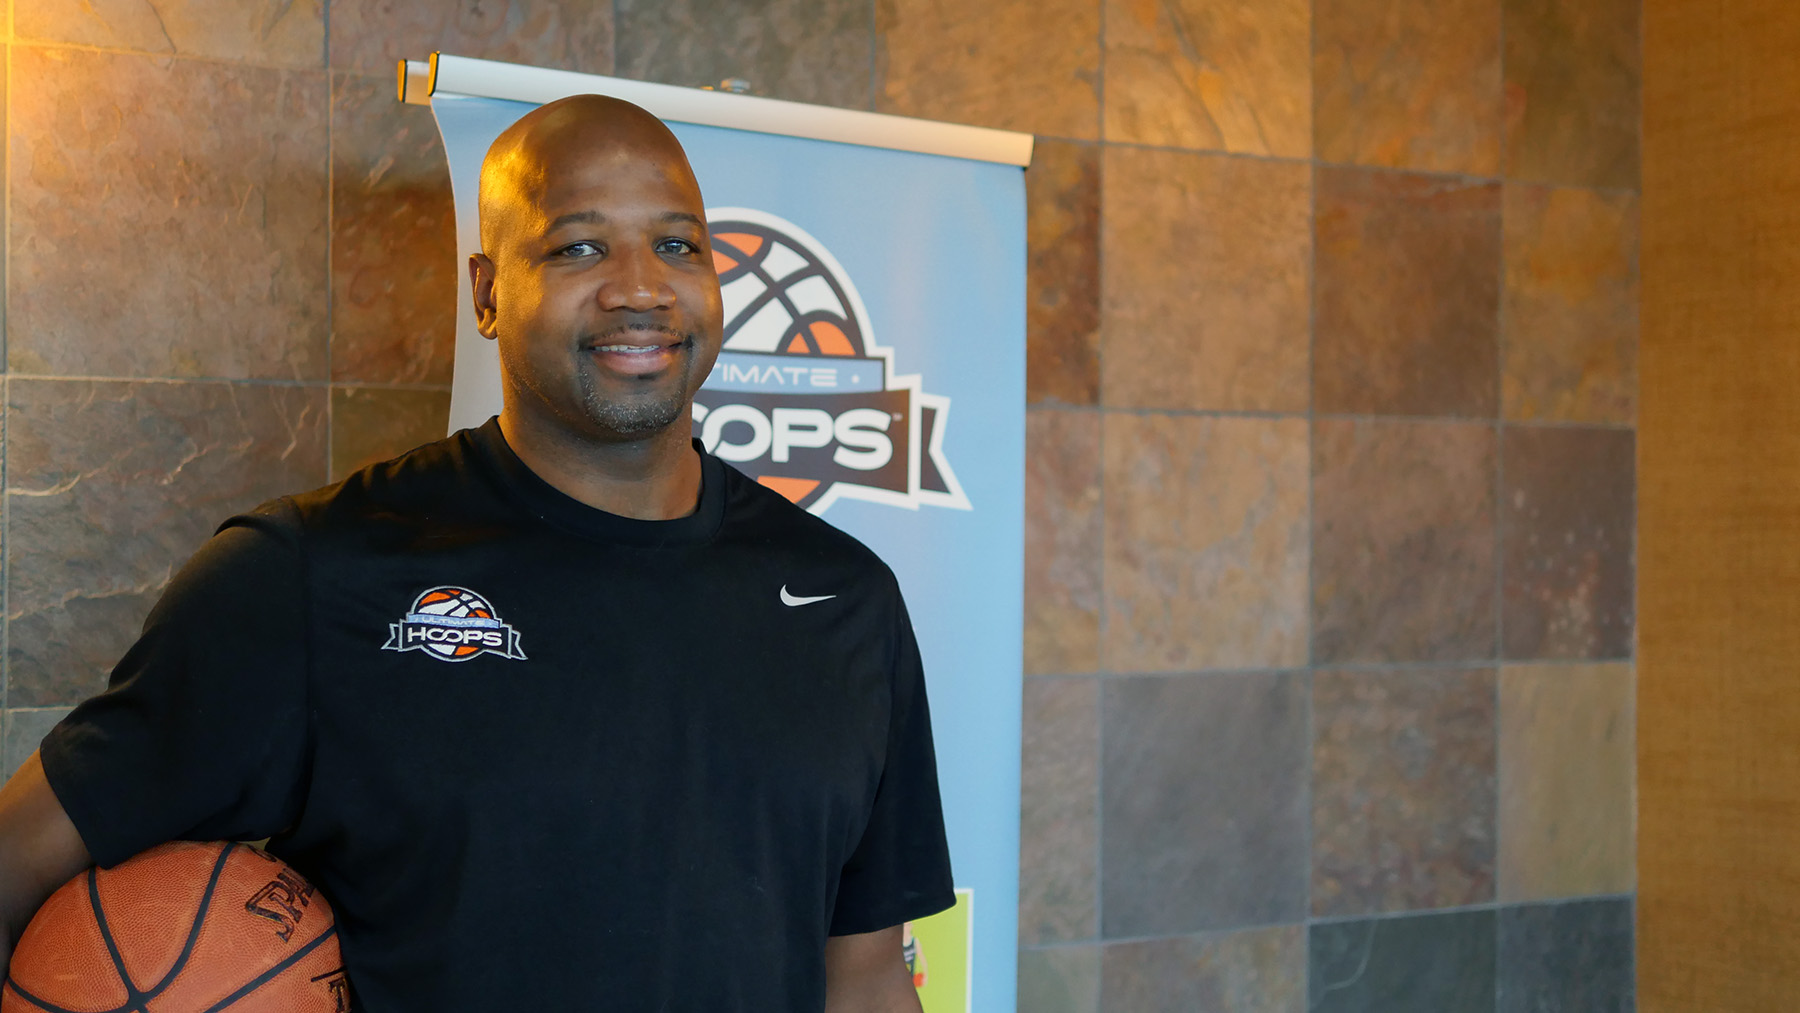 Lorenzo Orr  was Ultimate Hoops' first trainer at Life Time. His program in Lakeville, MN started in 2010 and is the longest running program in the company.